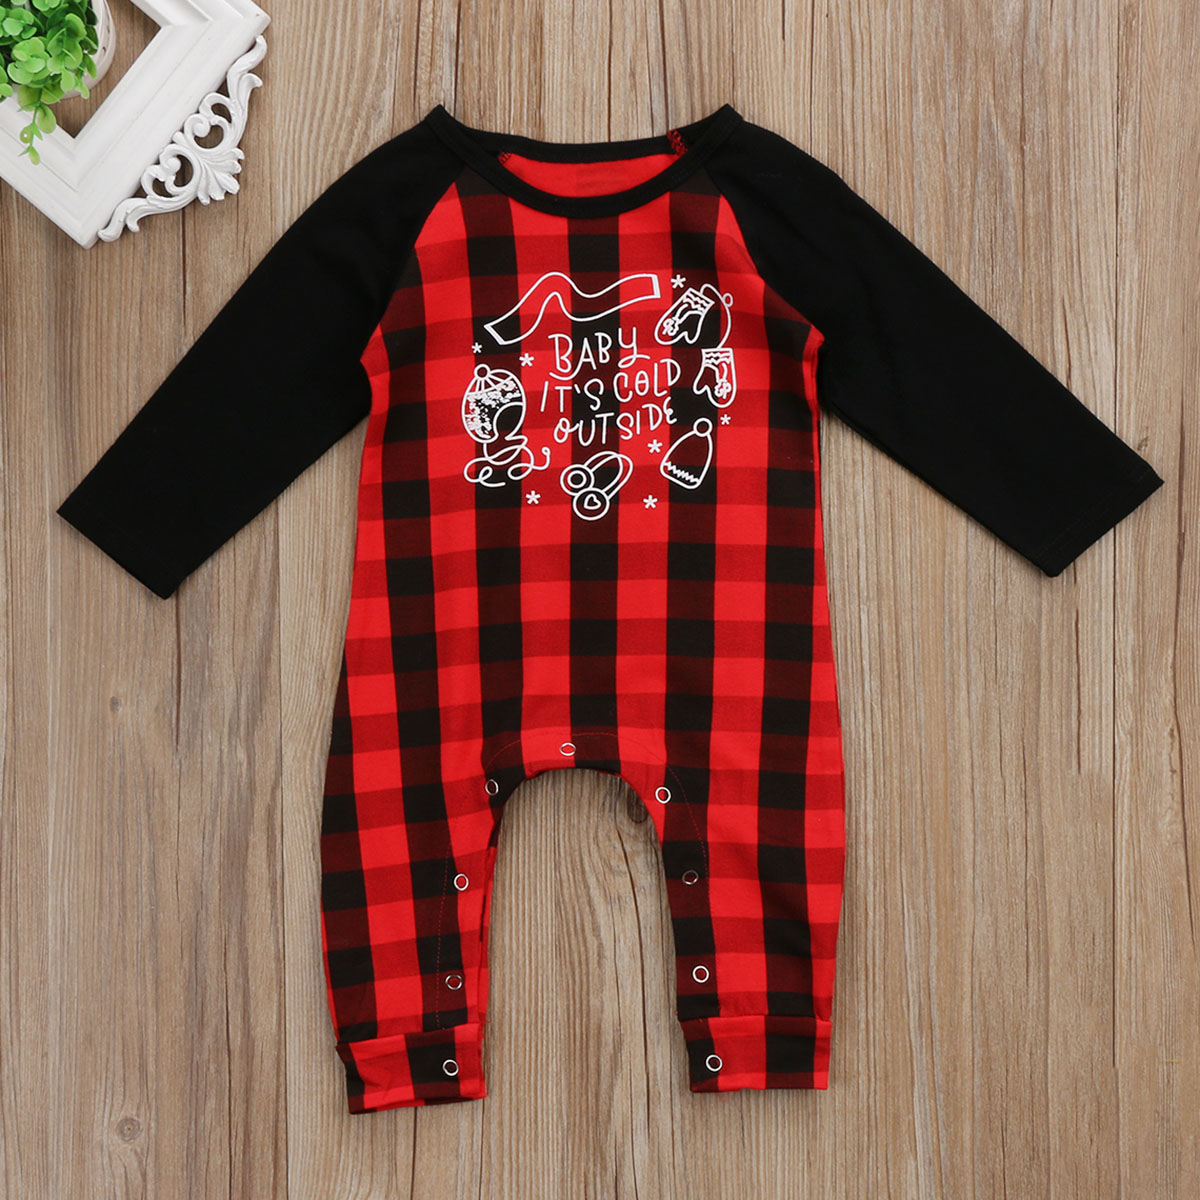 Toddler Newborn Baby Boy Girl Plaid Romper Jumpsuit Playsuit Long Sleeve Autumn Cotton Infant Clothes autumn winter baby girl rompers striped cute infant jumpsuit ropa long sleeve thicken cotton girl romper hat toddler clothes